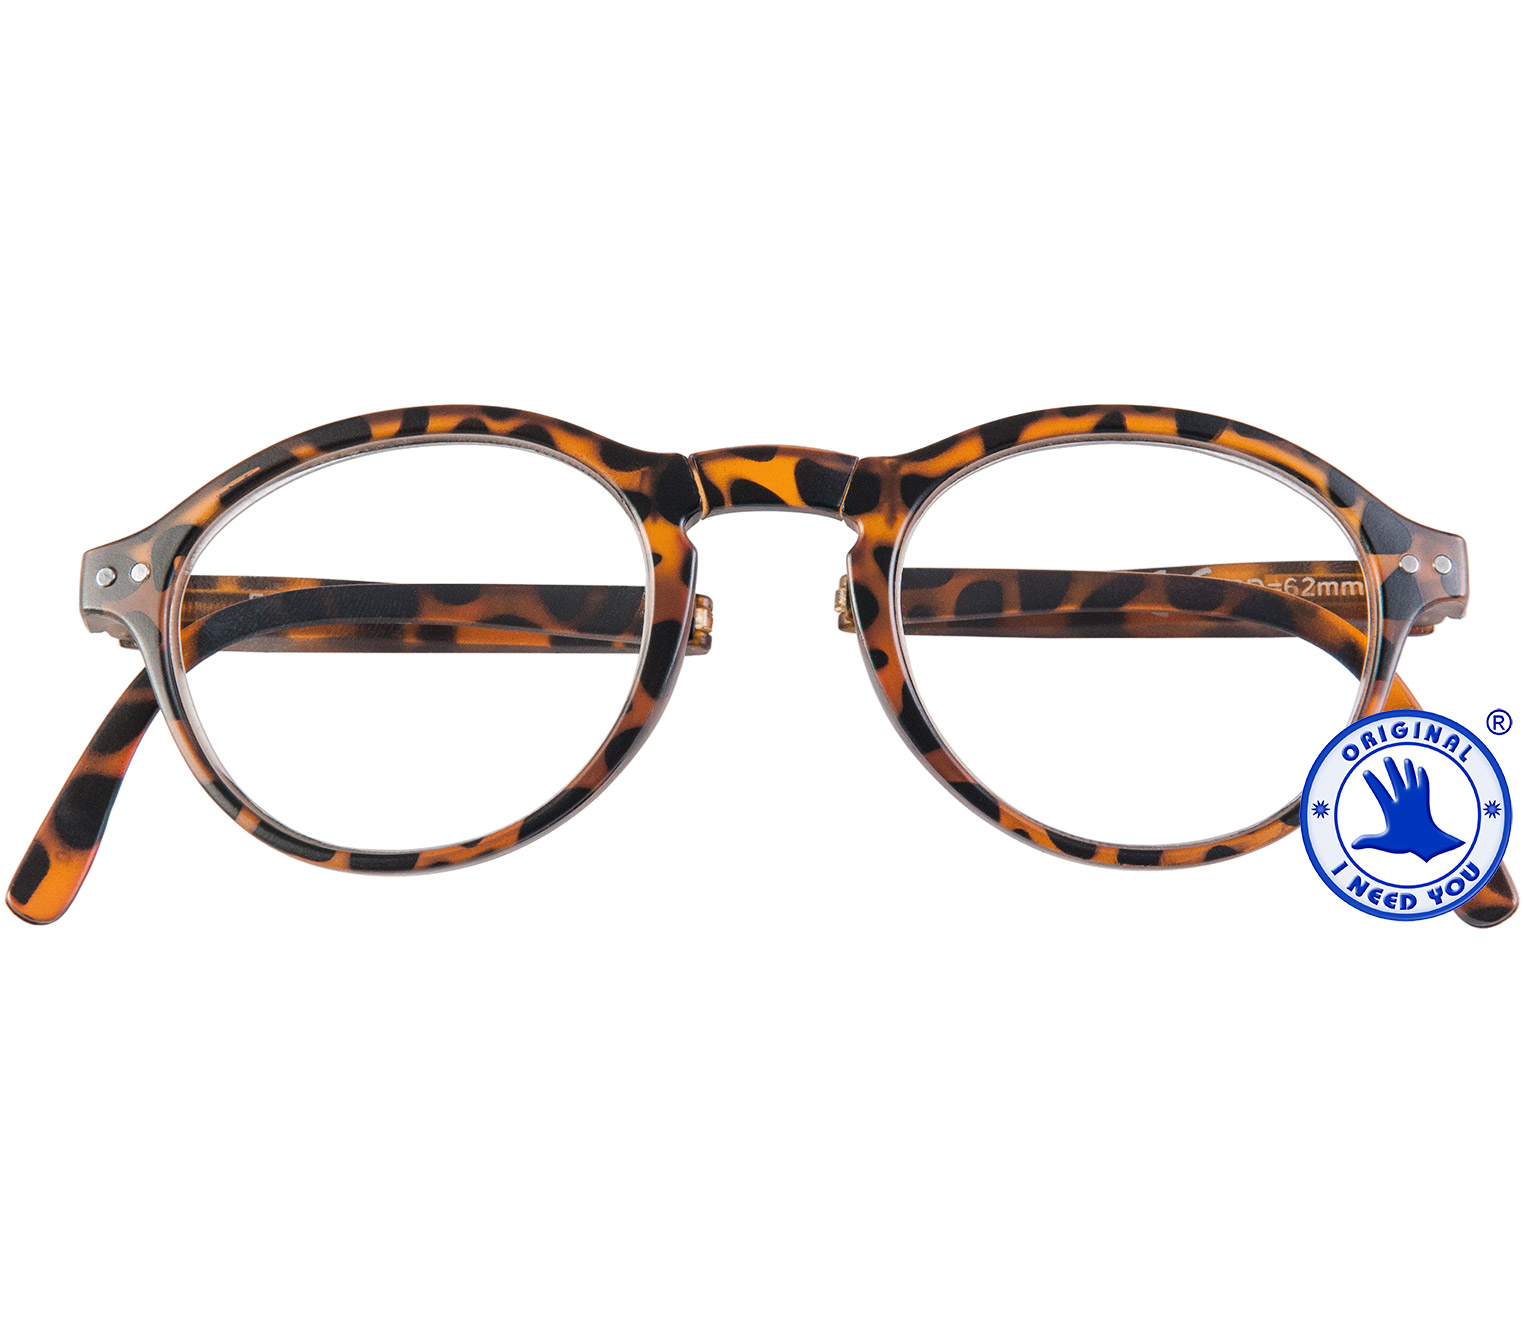 Additional Image 2 - Foldy (Tortoiseshell)